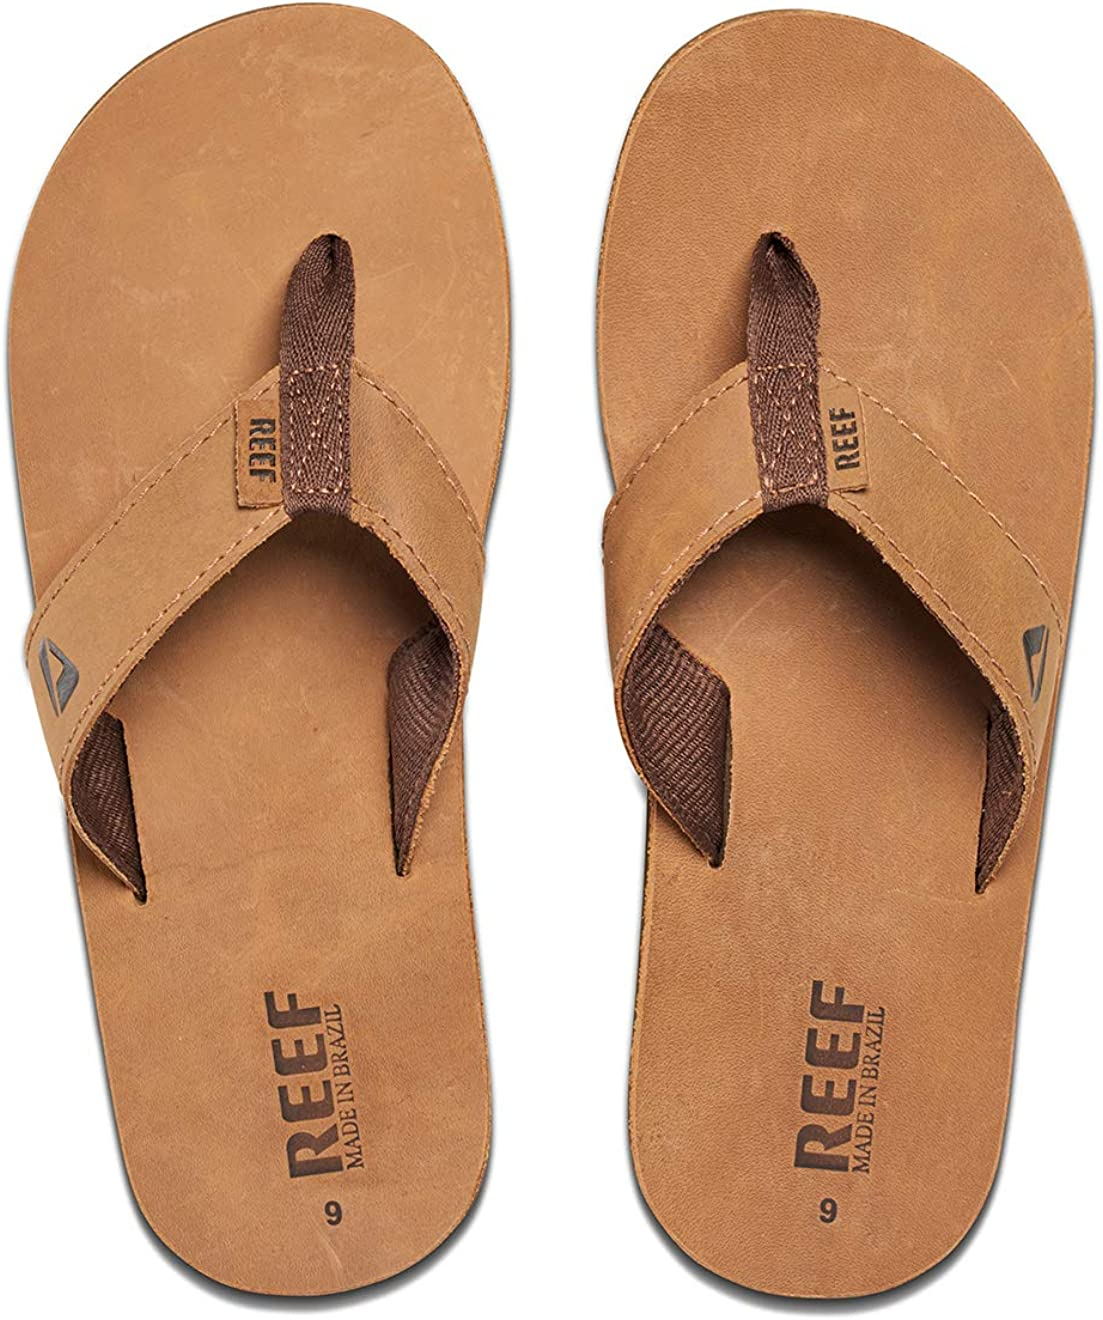 Reef Men's Leather Smoothy Sandal